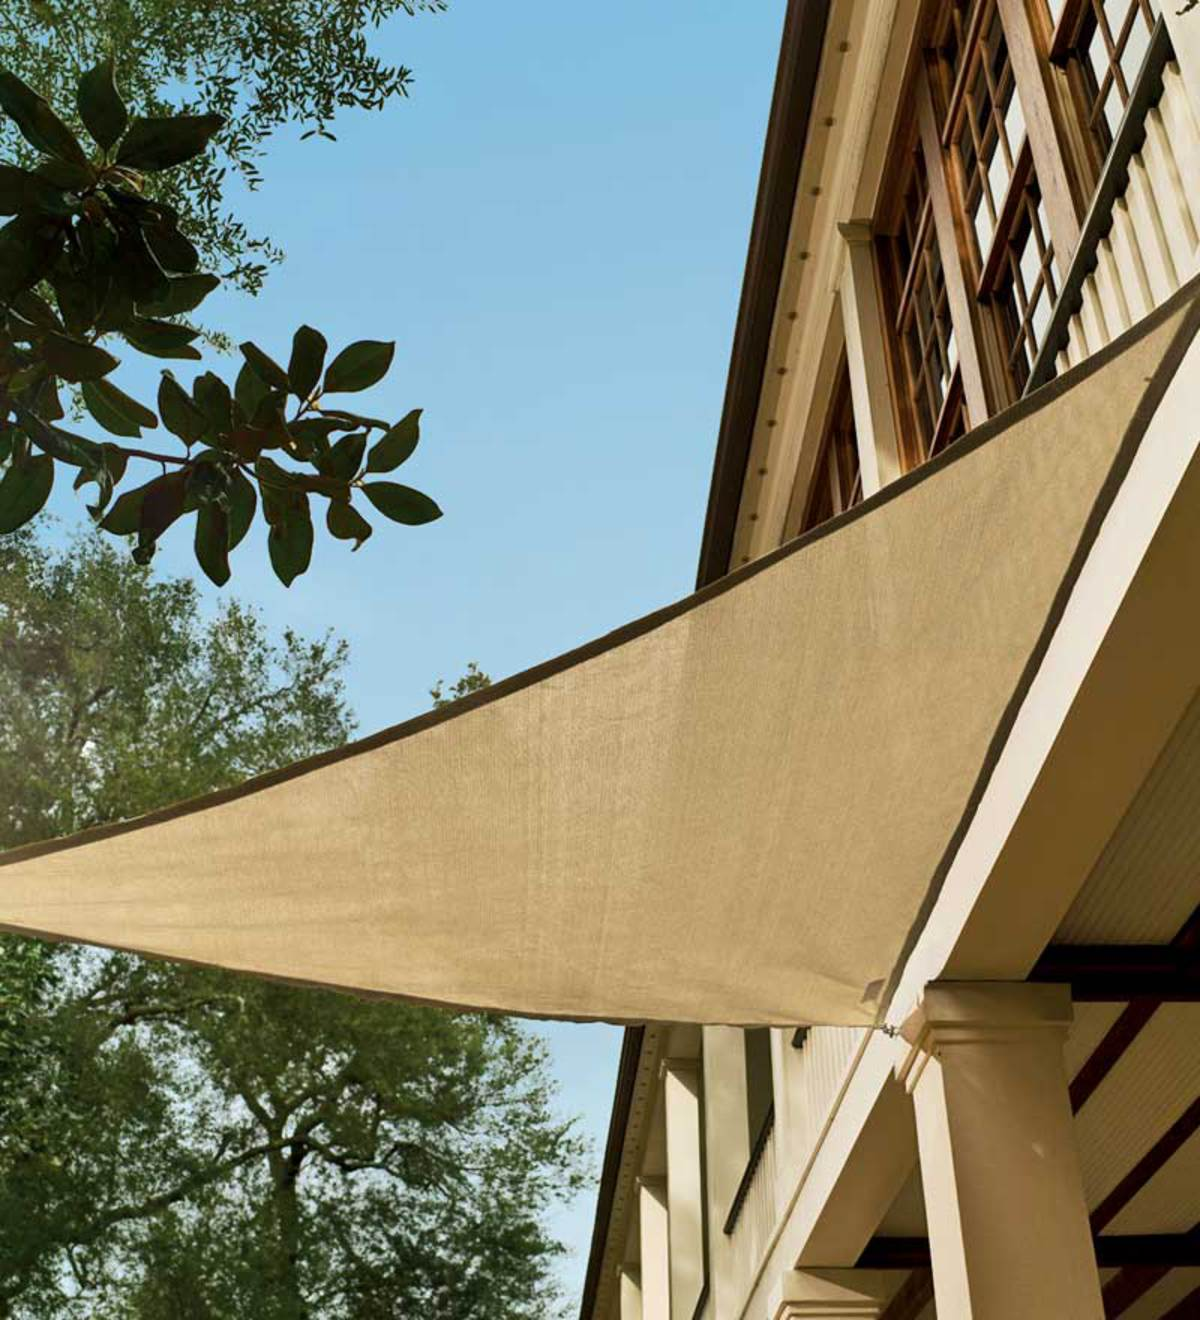 16 5 Quot Fade Resistant Sunblocking Triangle Shade Sail Blue